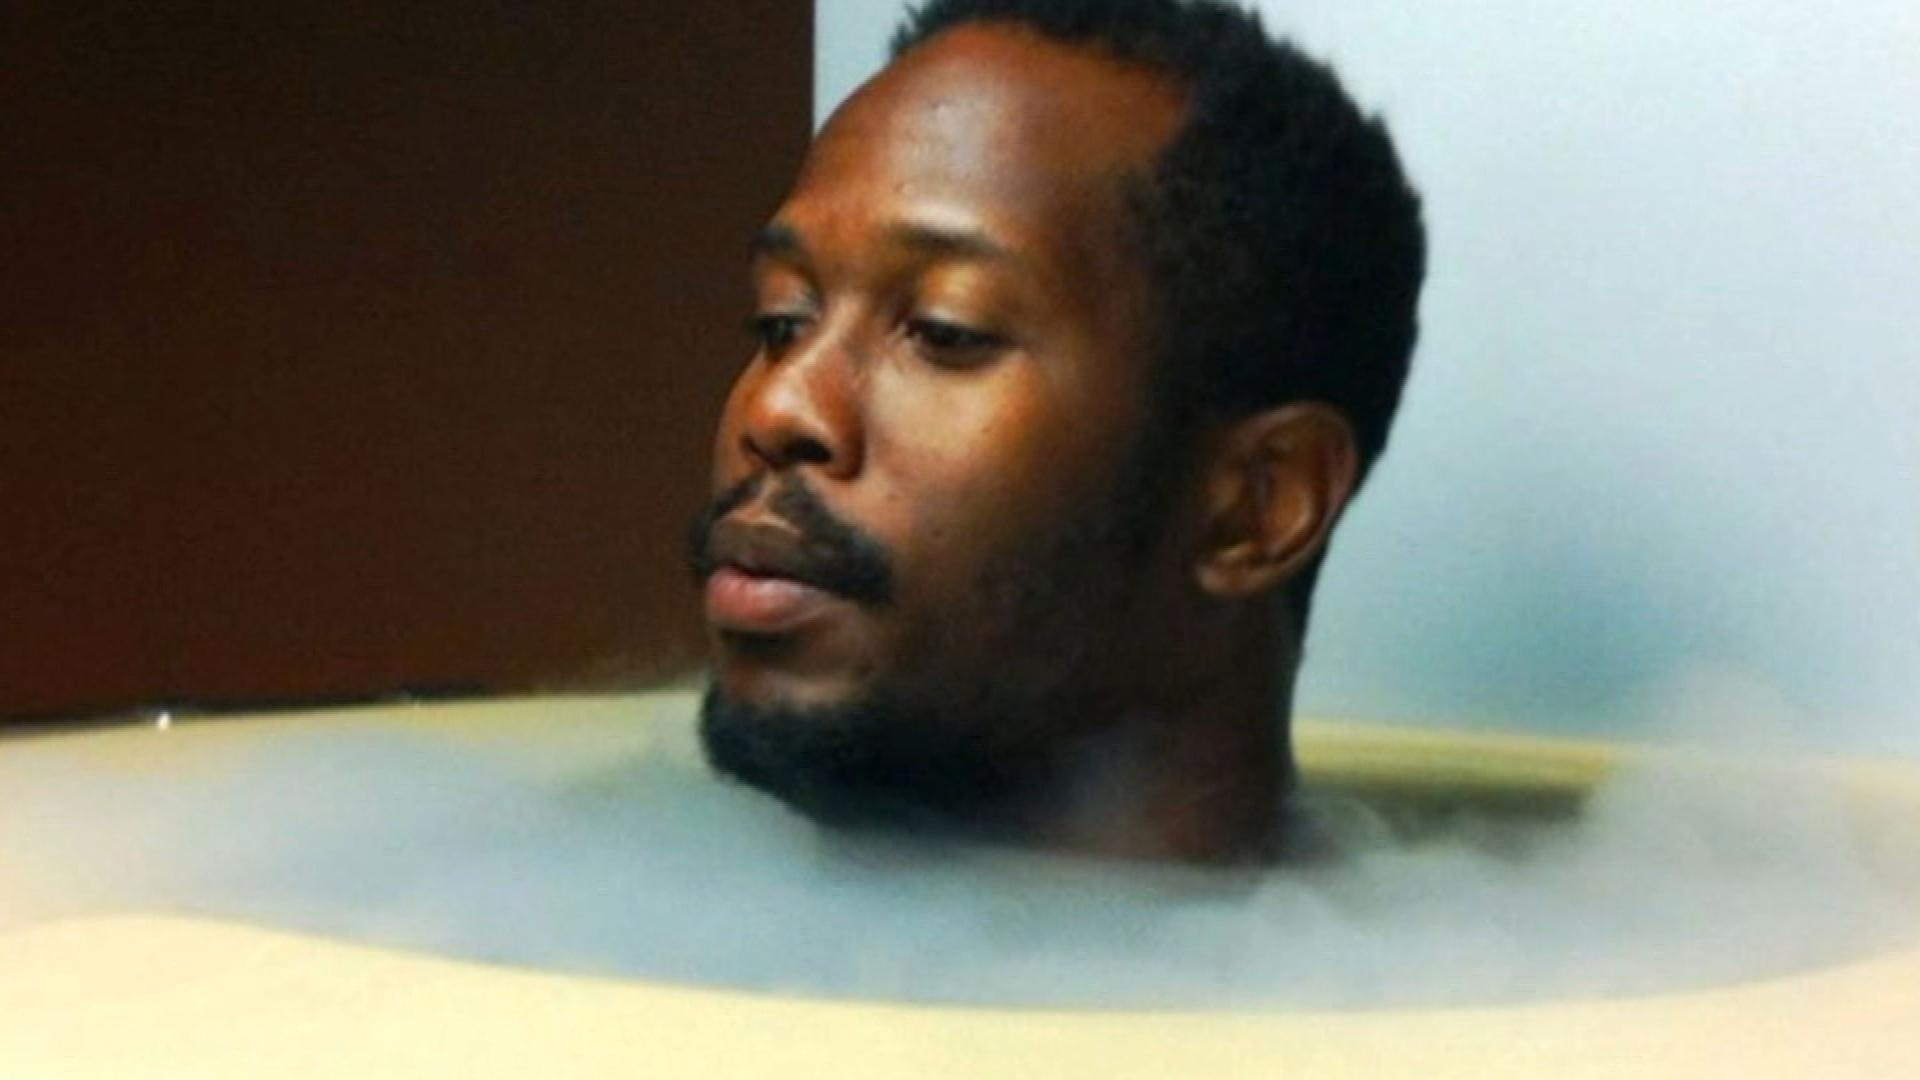 Von Miller in the cryotherapy chamber (credit: CBS)